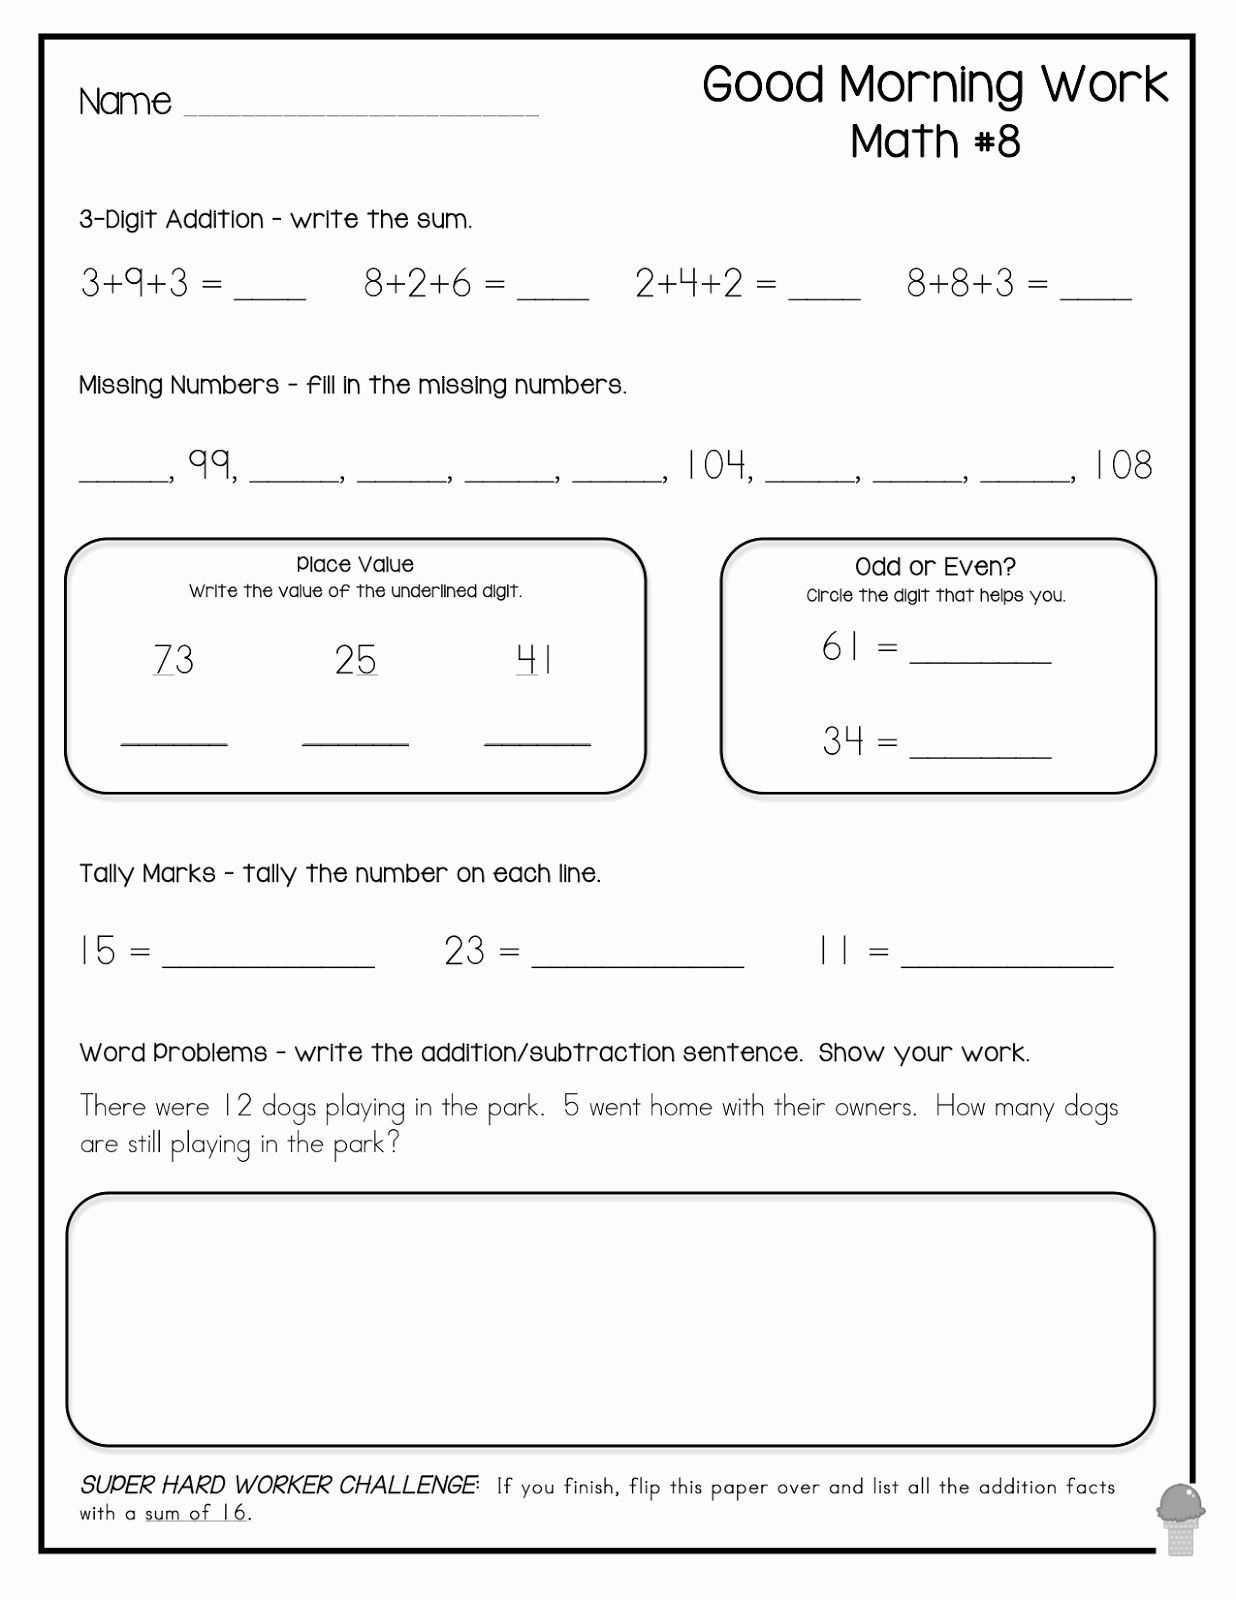 hight resolution of Printable 3rd To 4th Grade Summer Worksheets   Printable Worksheets and  Activities for Teachers